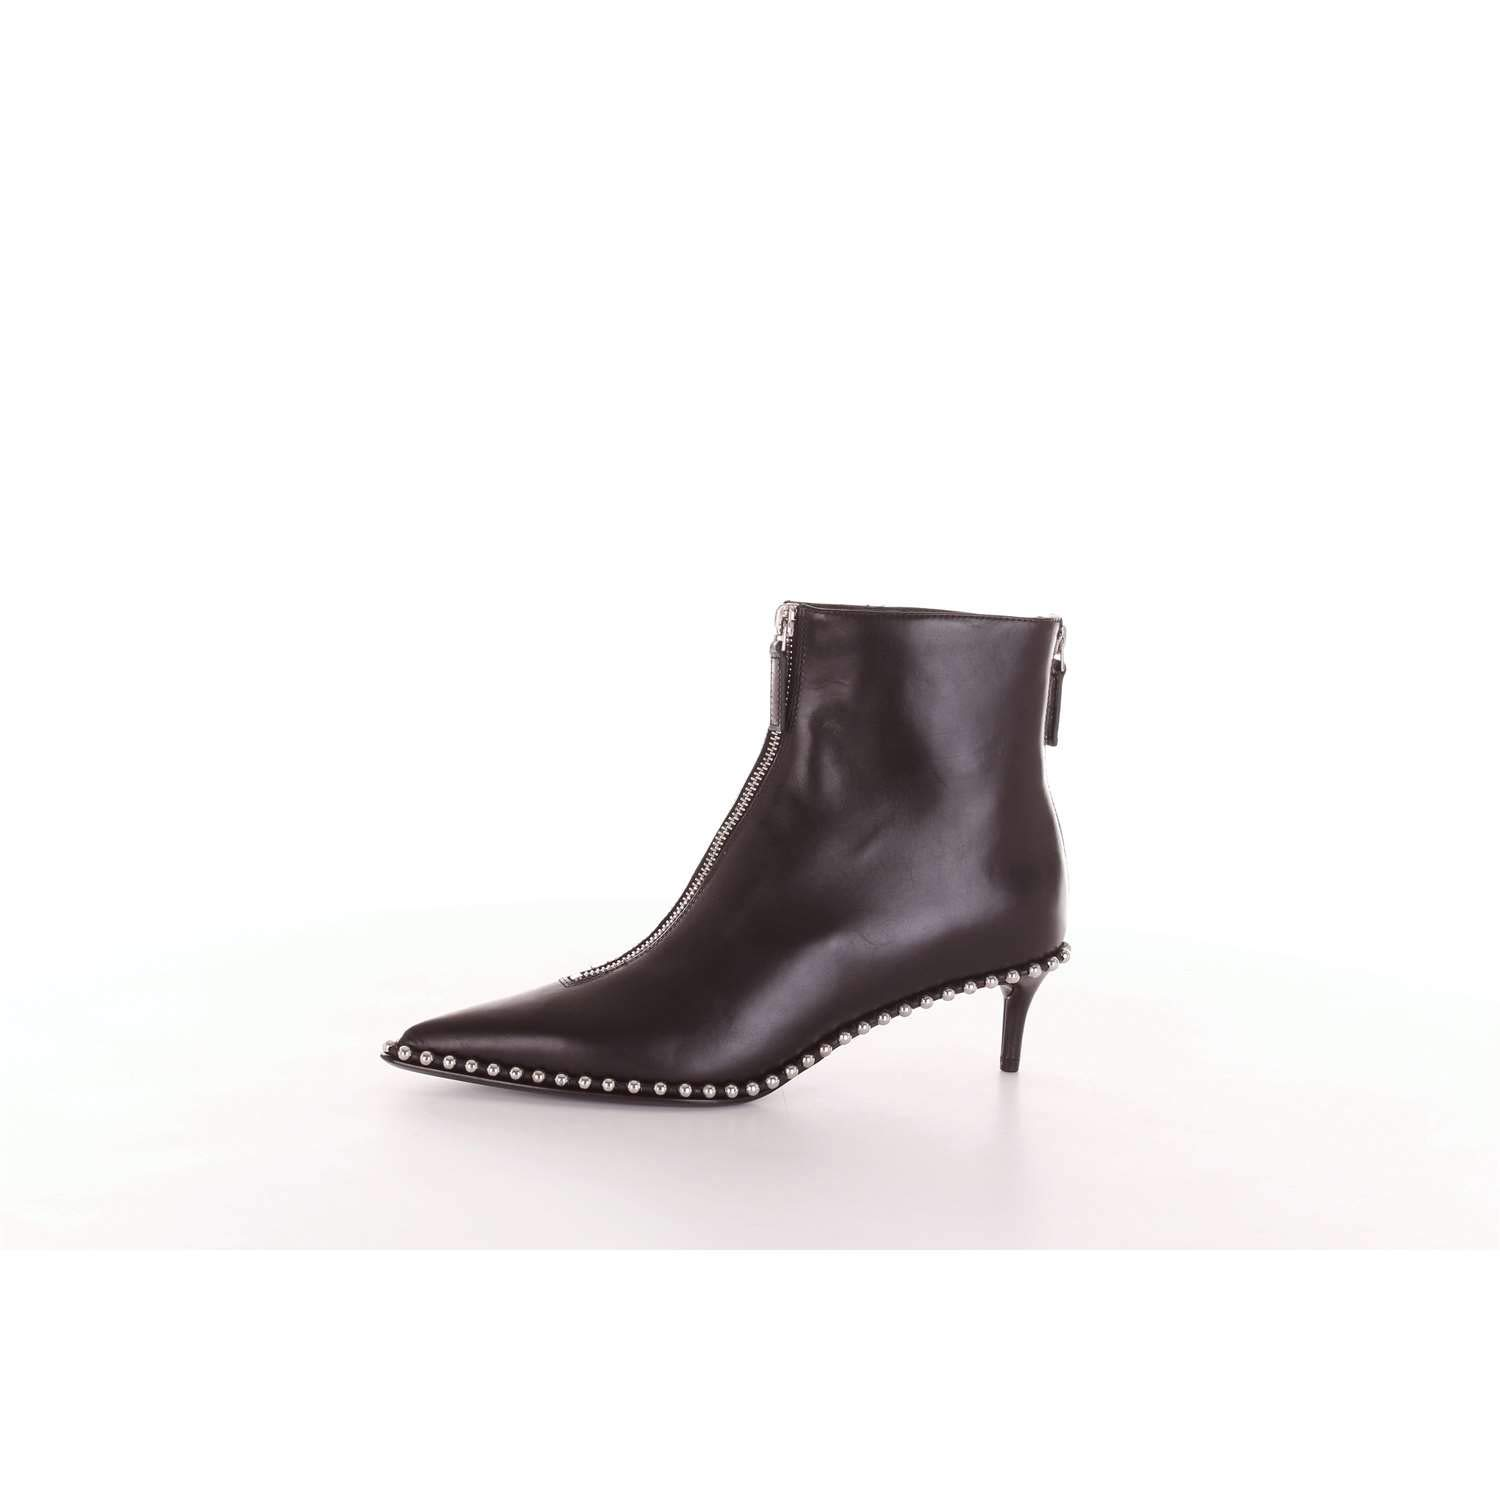 bba7ea0e212c4 Alexander wang womens eri black leather studded low boots zipper front ankle  bootie jpg 1500x1500 Low